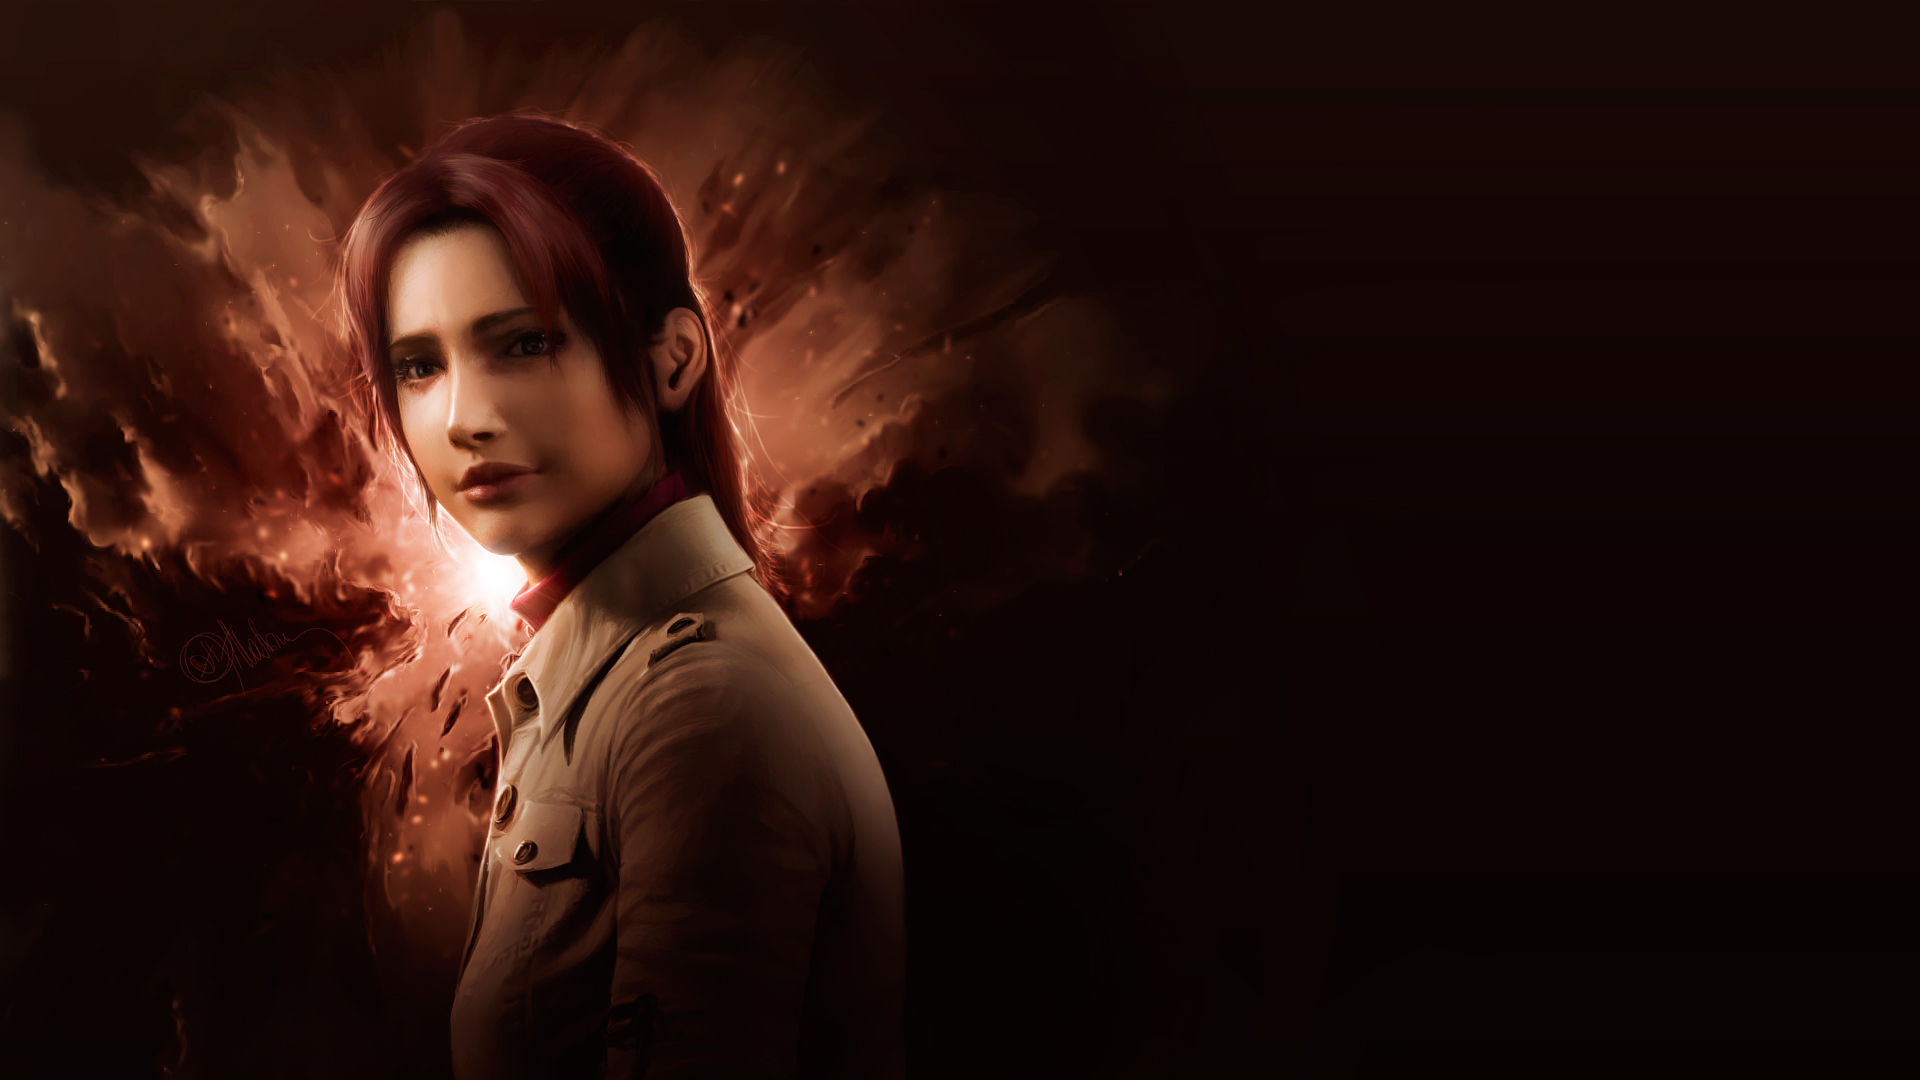 Claire Redfield. Warm Whispers by push-pulse